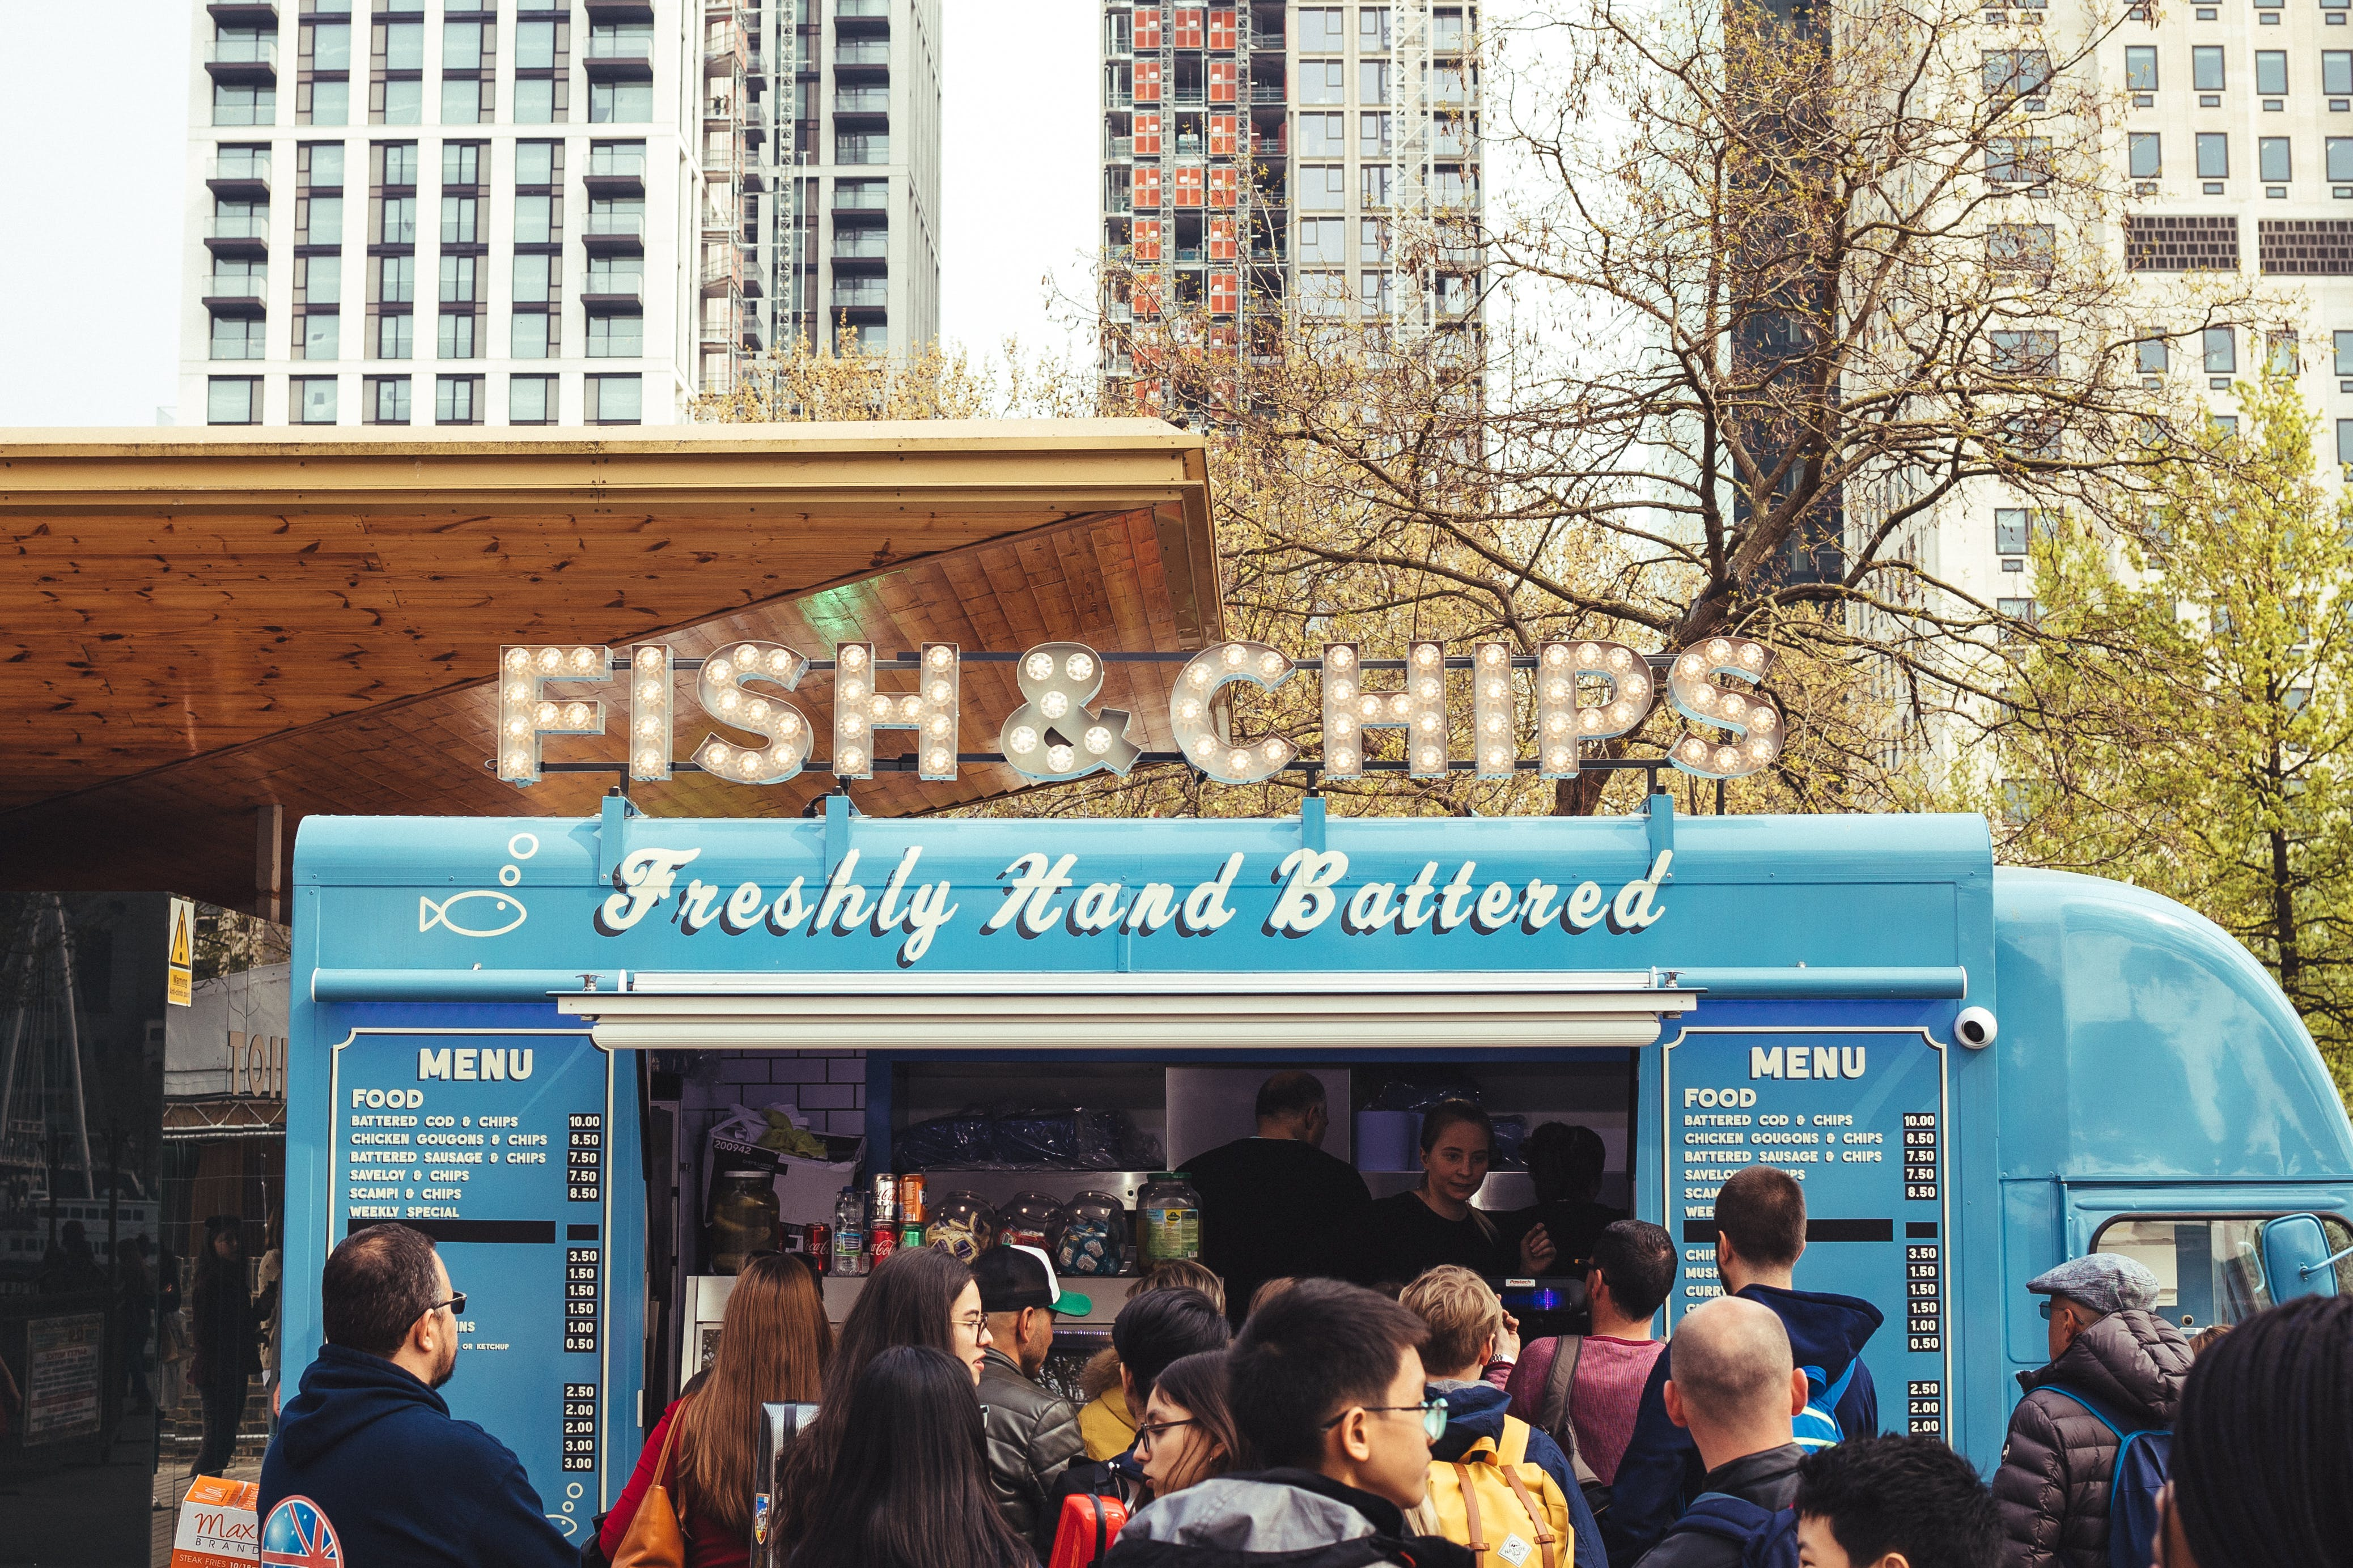 Blue Fish & Chips Food Truck